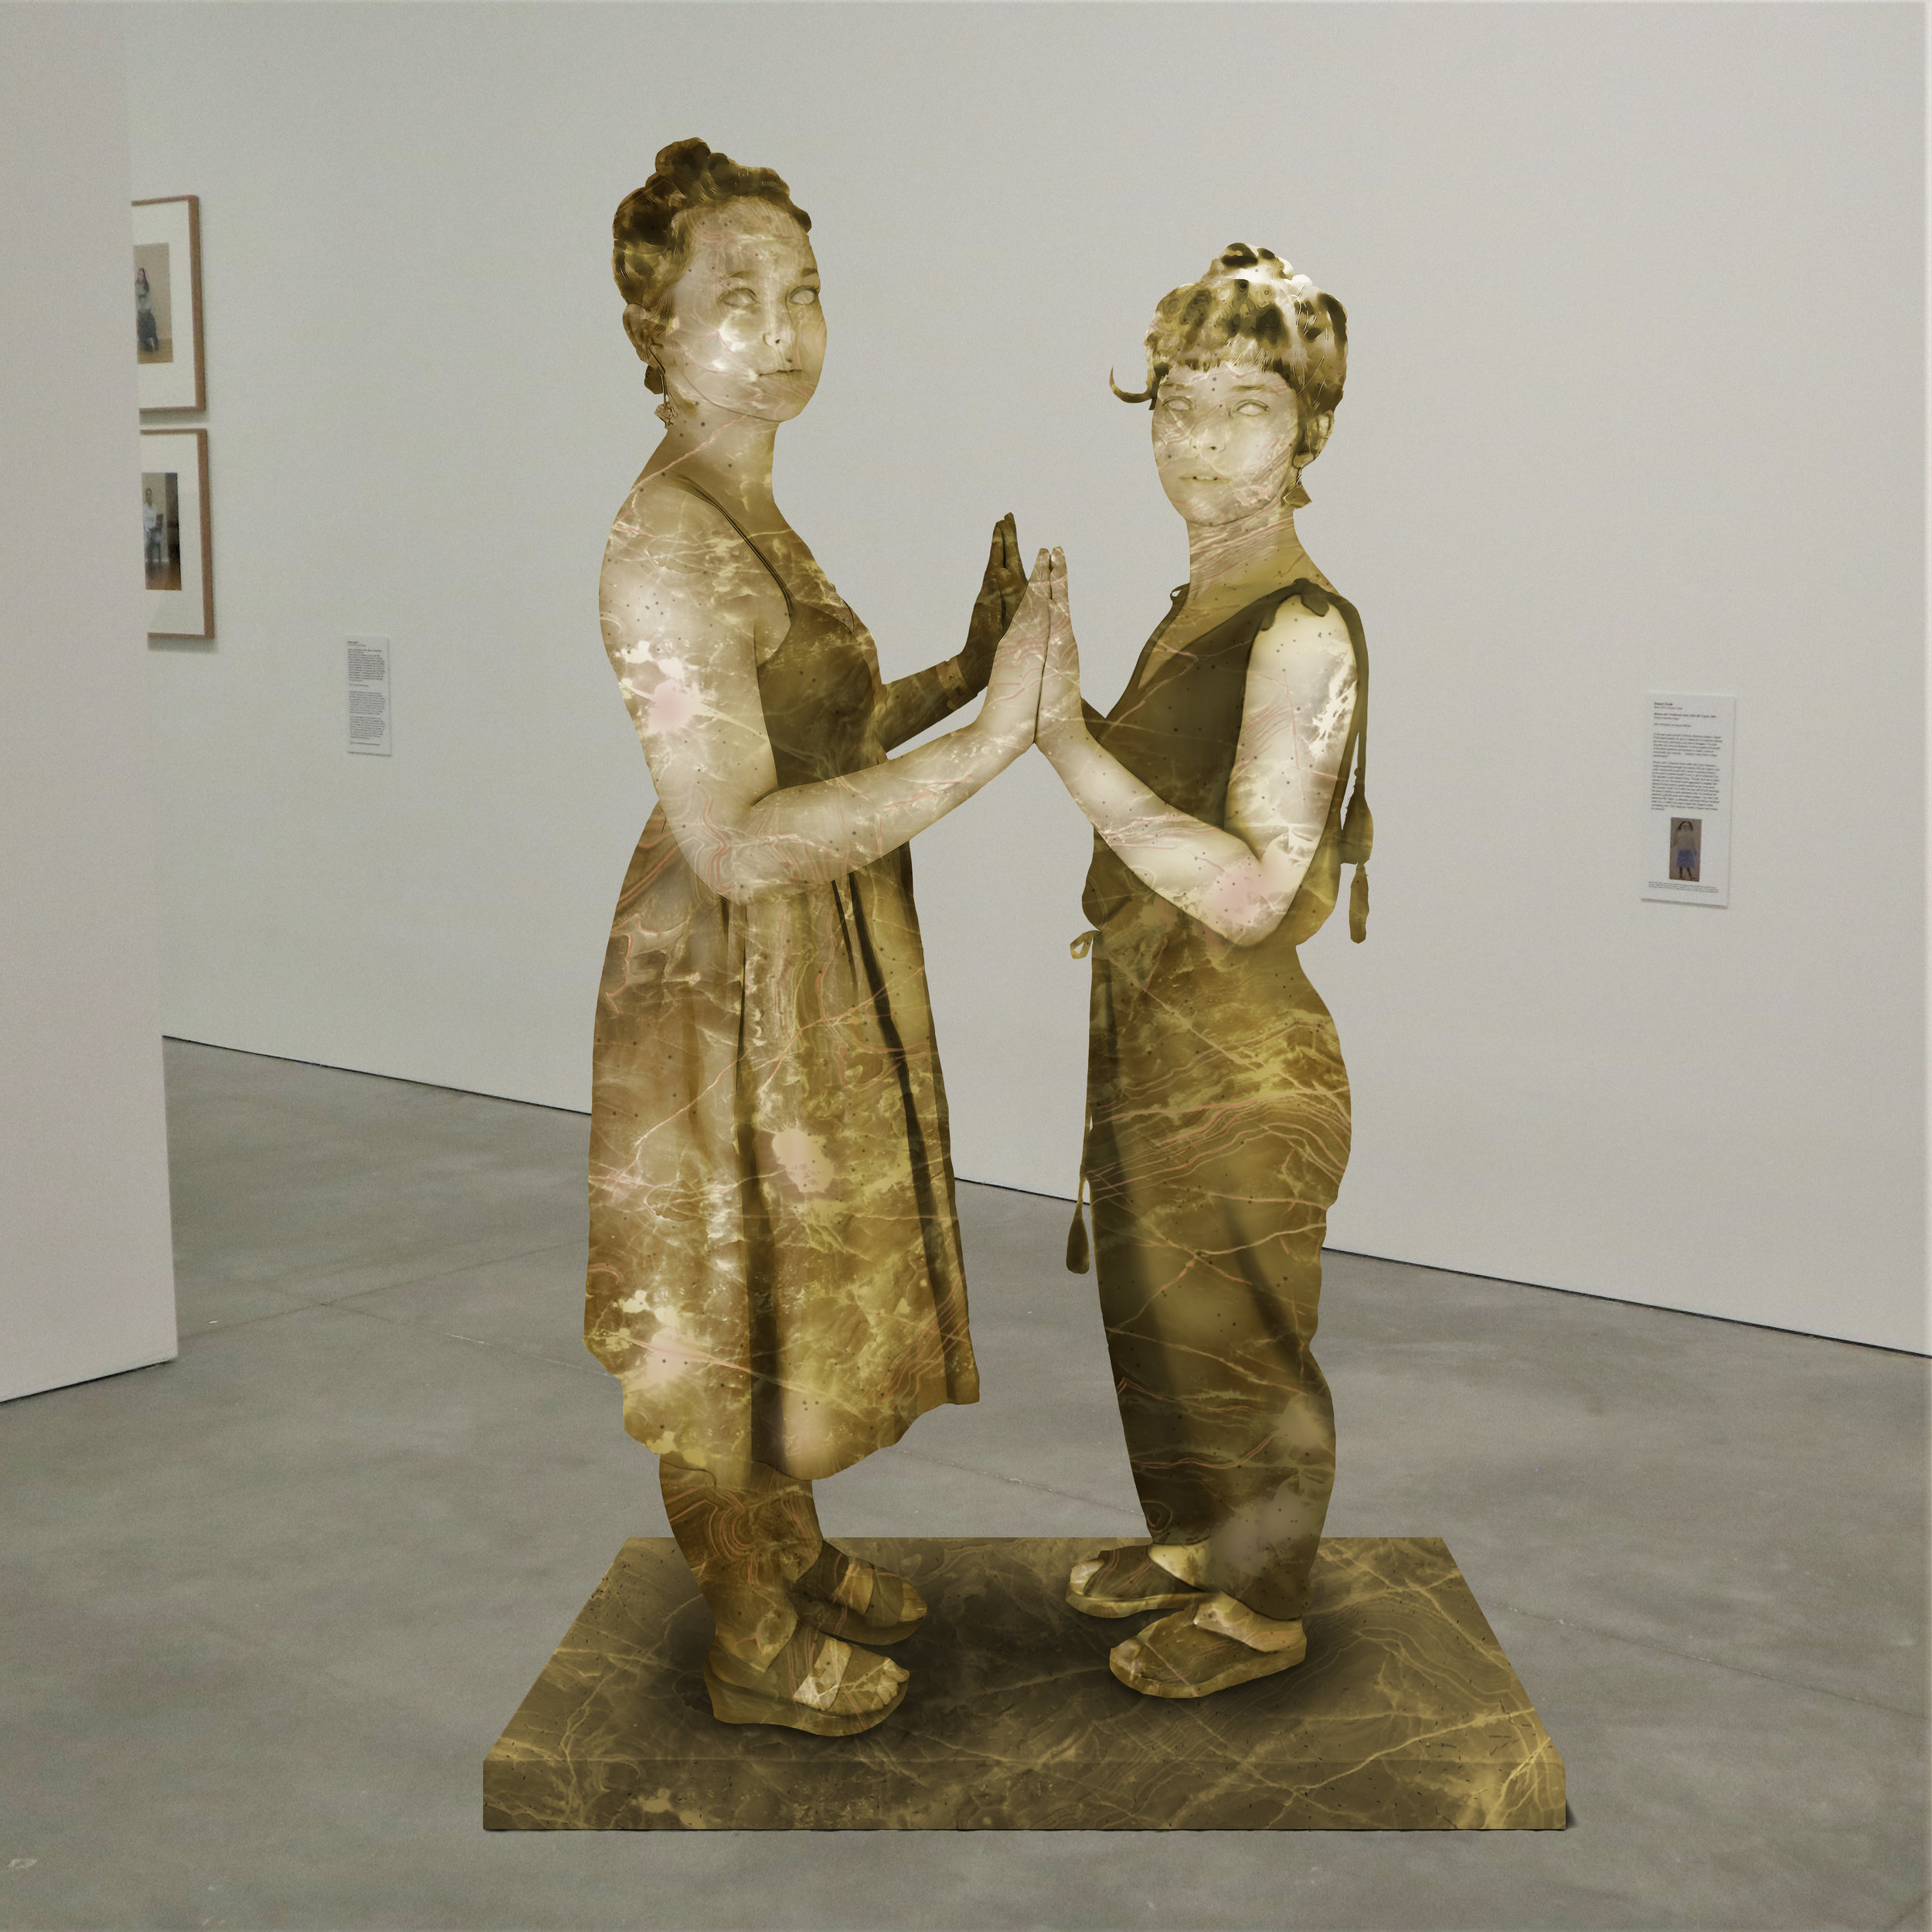 """The Purdy Girls,"" soapstone, Institute of Contemporary Art, Boston   2018  JPG  During an installation at the Institute of Contemporary Art in Boston, viewers were invited to imagine themselves as statues in the ICA's permanent collection. Participants were photographed posing as a statue they felt represented themselves, created a name for their fictional statue, and selected a stone from which their statue would be made. Professional and amateur digital artists were commissioned to create renderings of the statues, which were superimposed on photos of the ICA's permanent collection gallery space."